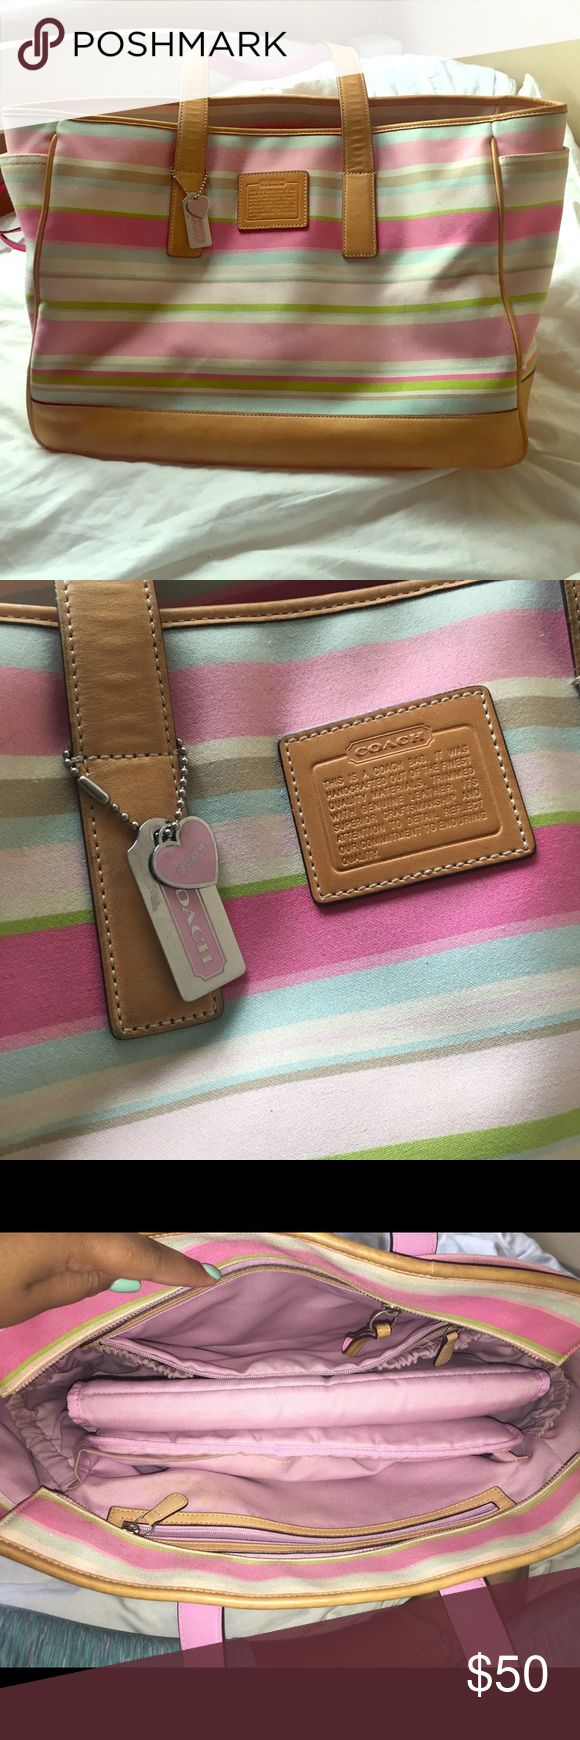 """Coach Diaper Bag Cue striped diaper bag! Pre-loved with so color fading as well as a bit of stain-age. TONS of pockets and storage  Measurements: 16"""" by 11"""" by 7"""" Straps: 28"""" total per strap Coach Bags Travel Bags"""